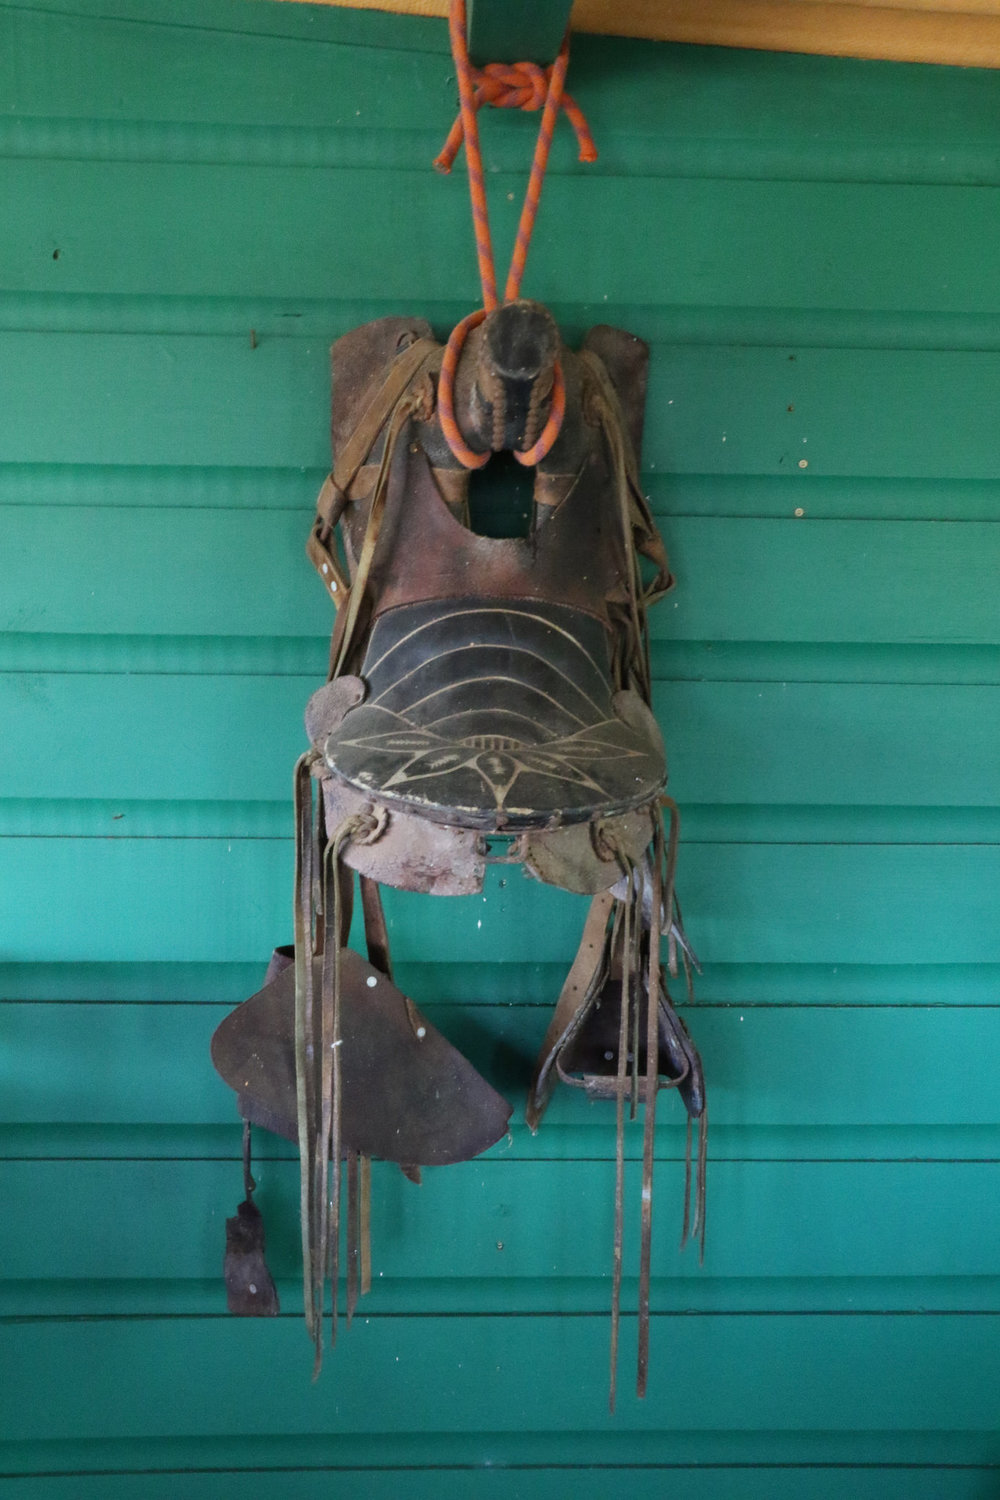 A Saddle On The Wall Reminds Us of the Ecolodge's History